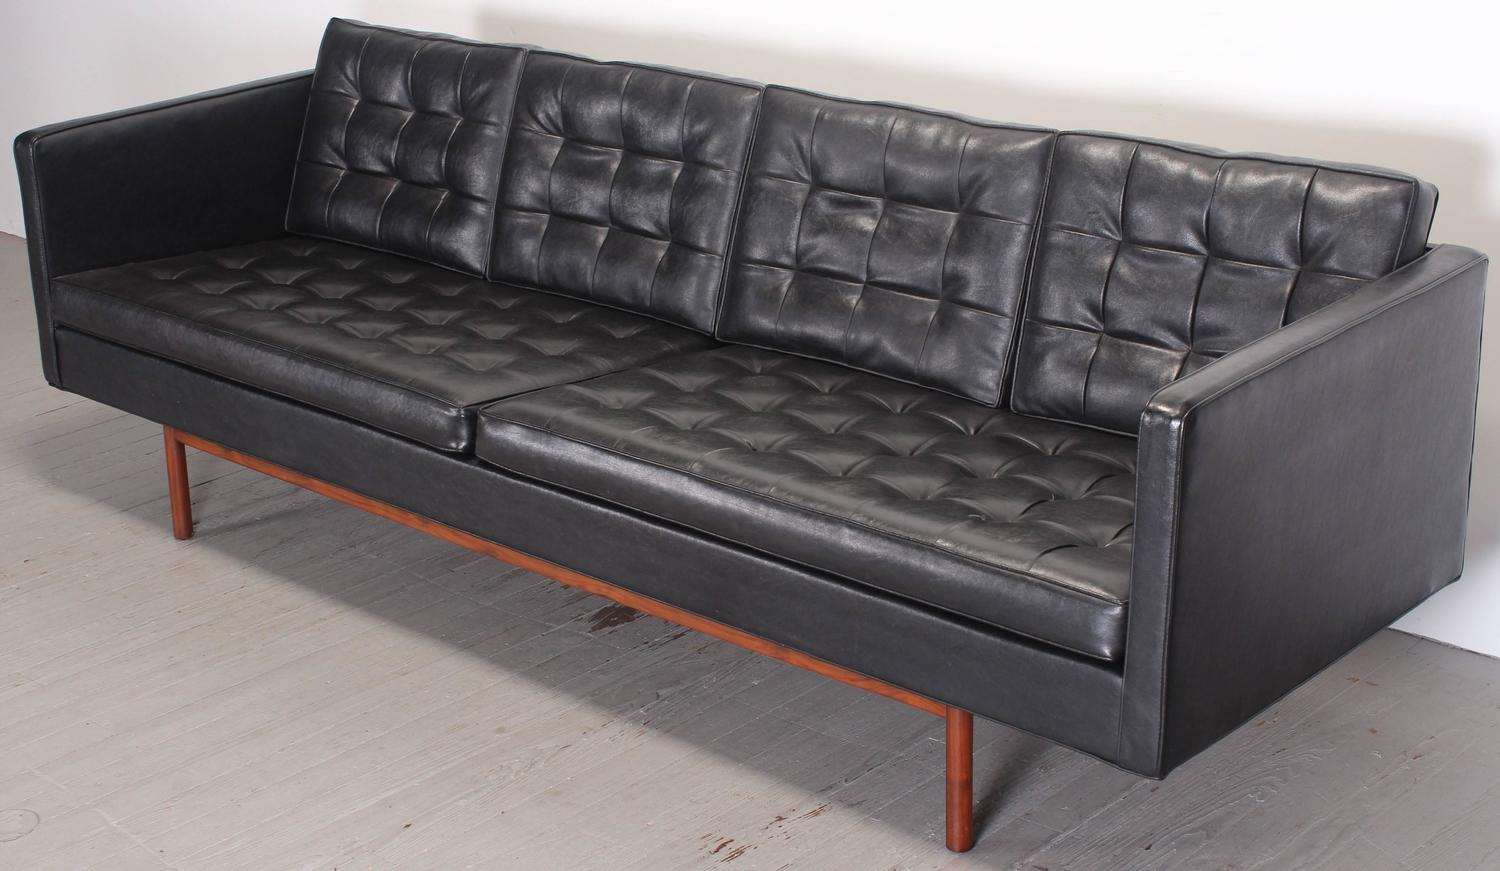 Milo Baughman For Thayer Coggin Black Vinyl Sofa, 1960s For Sale At 1stdibs